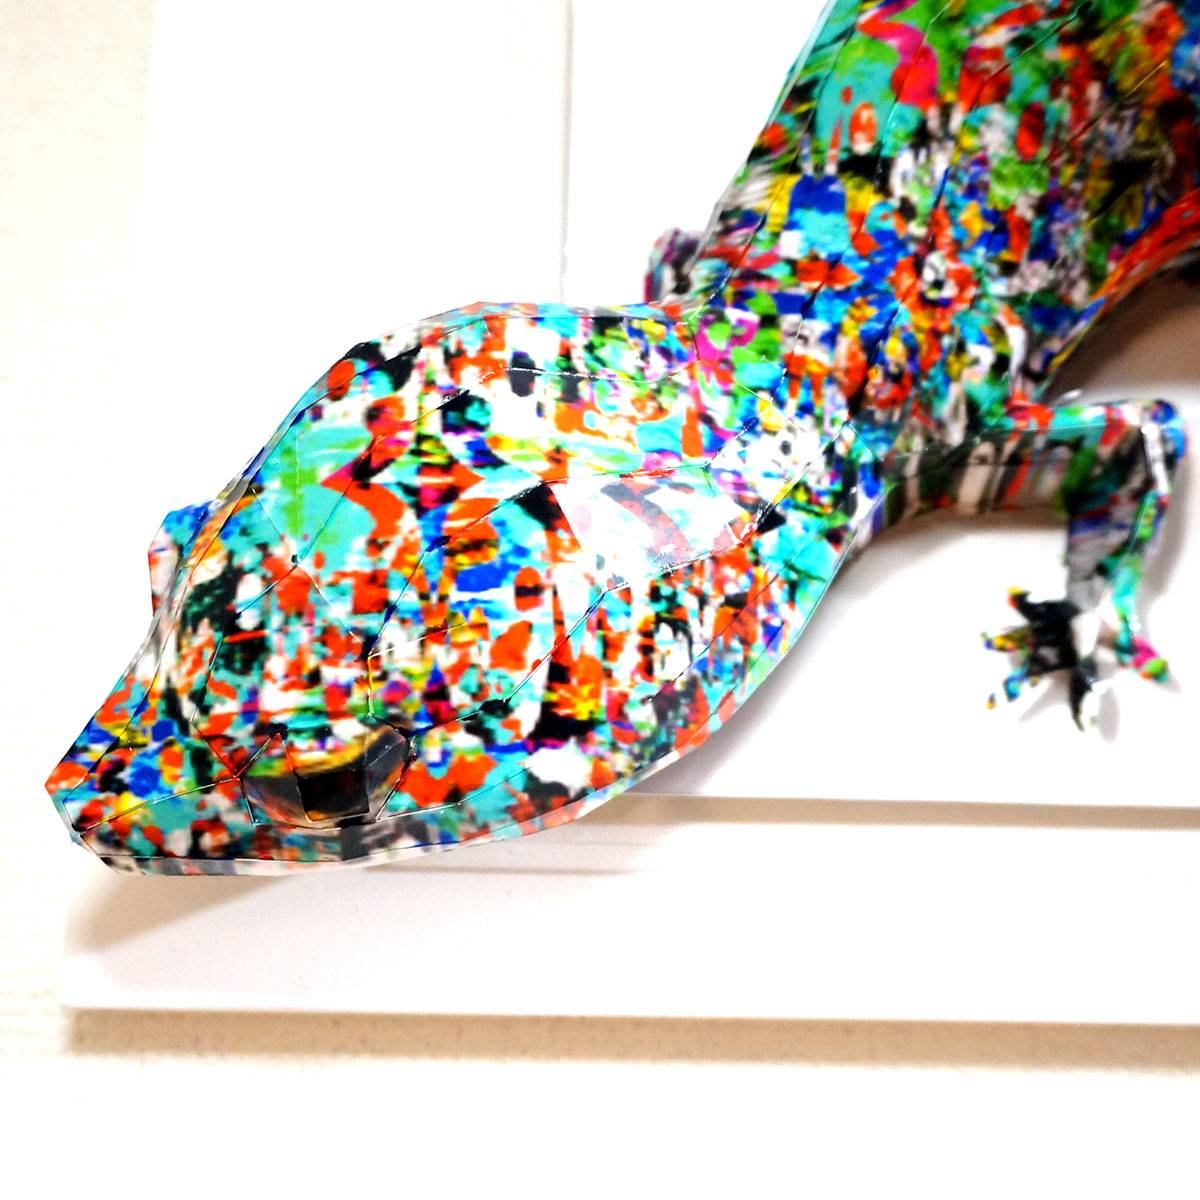 Giant, psychedelic lizard cares about its neighbors